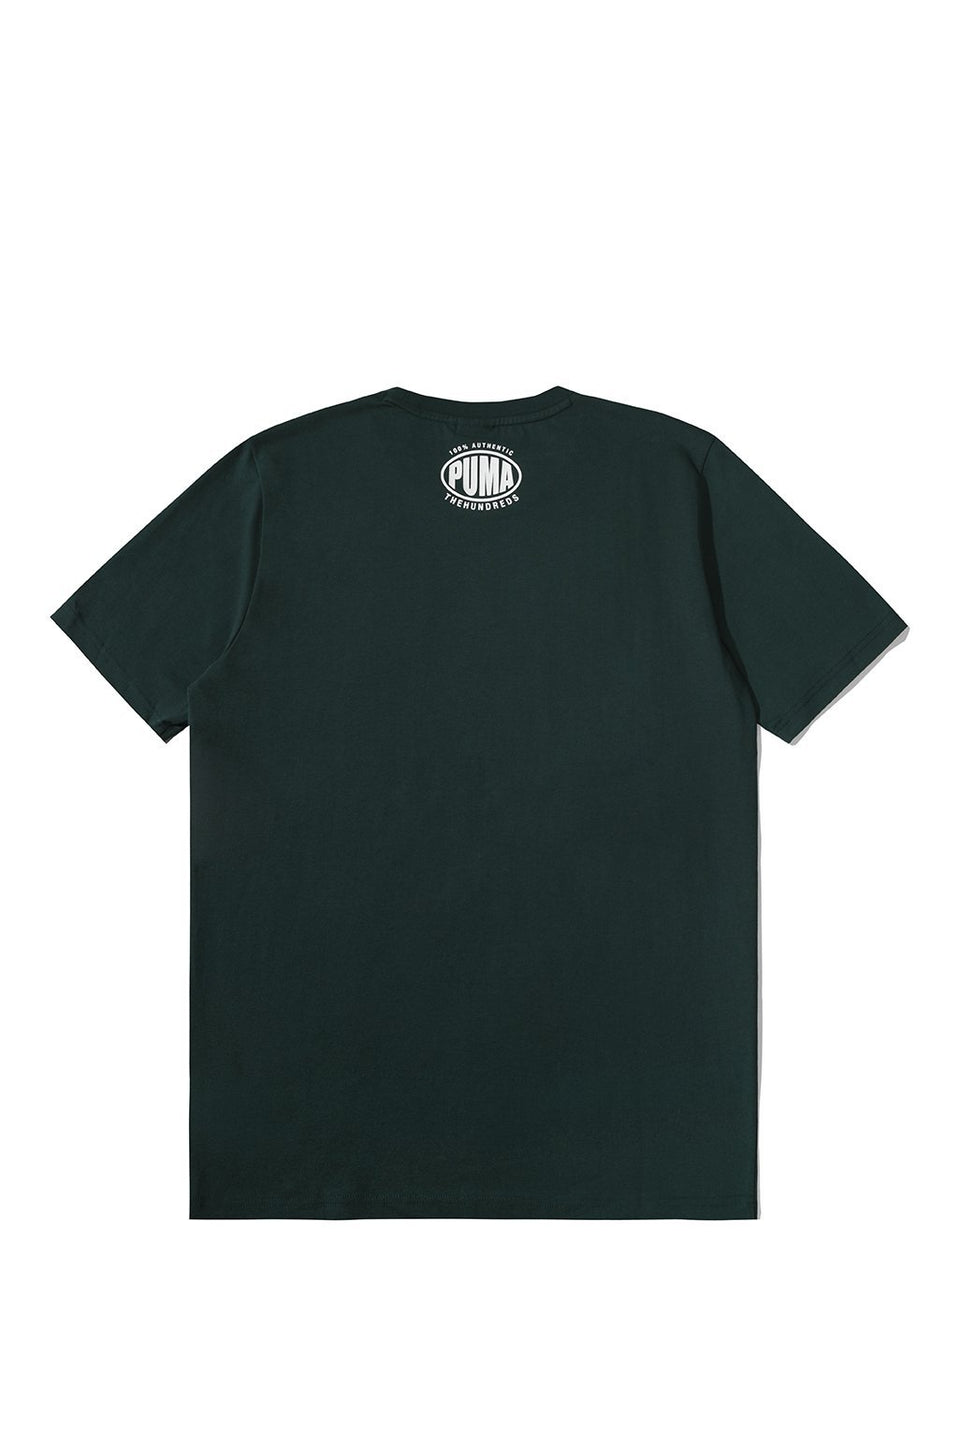 Party Crew T-Shirt #2